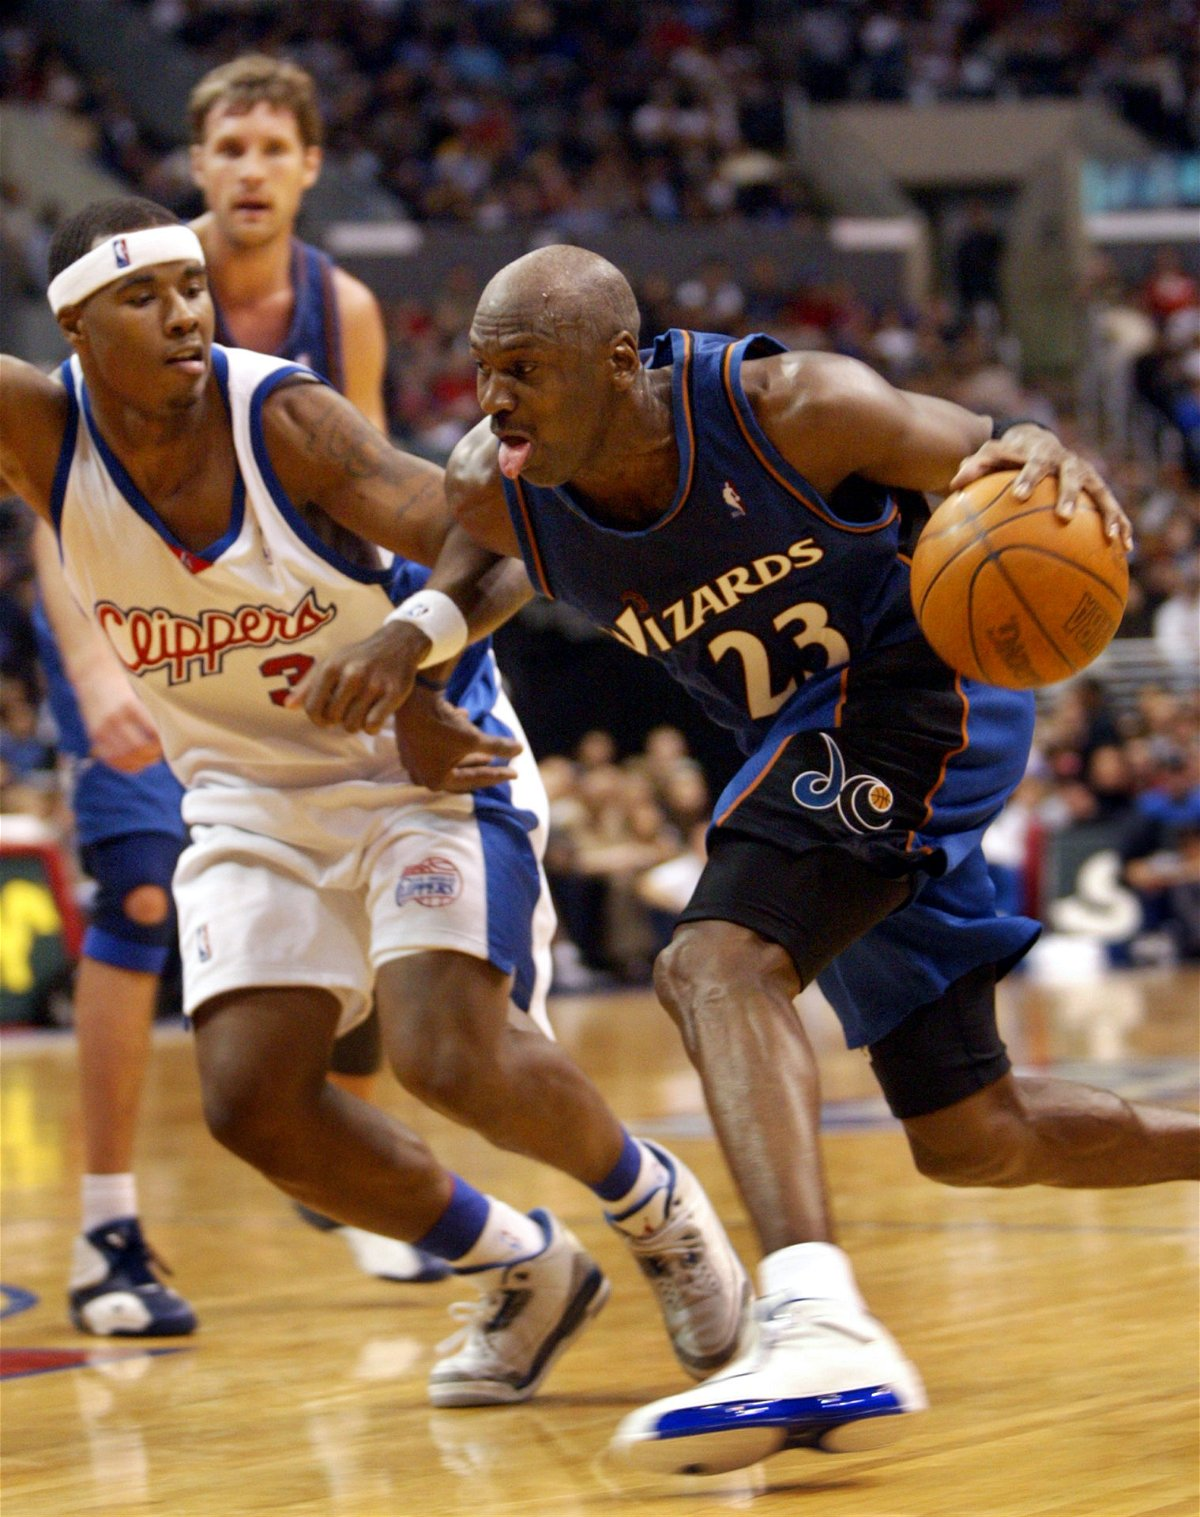 Además no pueden ver enchufe  Get Me Out of This MJ Horror': Gilbert Arenas Reveals Why He Joined the  Wizards After the Departure of Michael Jordan - EssentiallySports